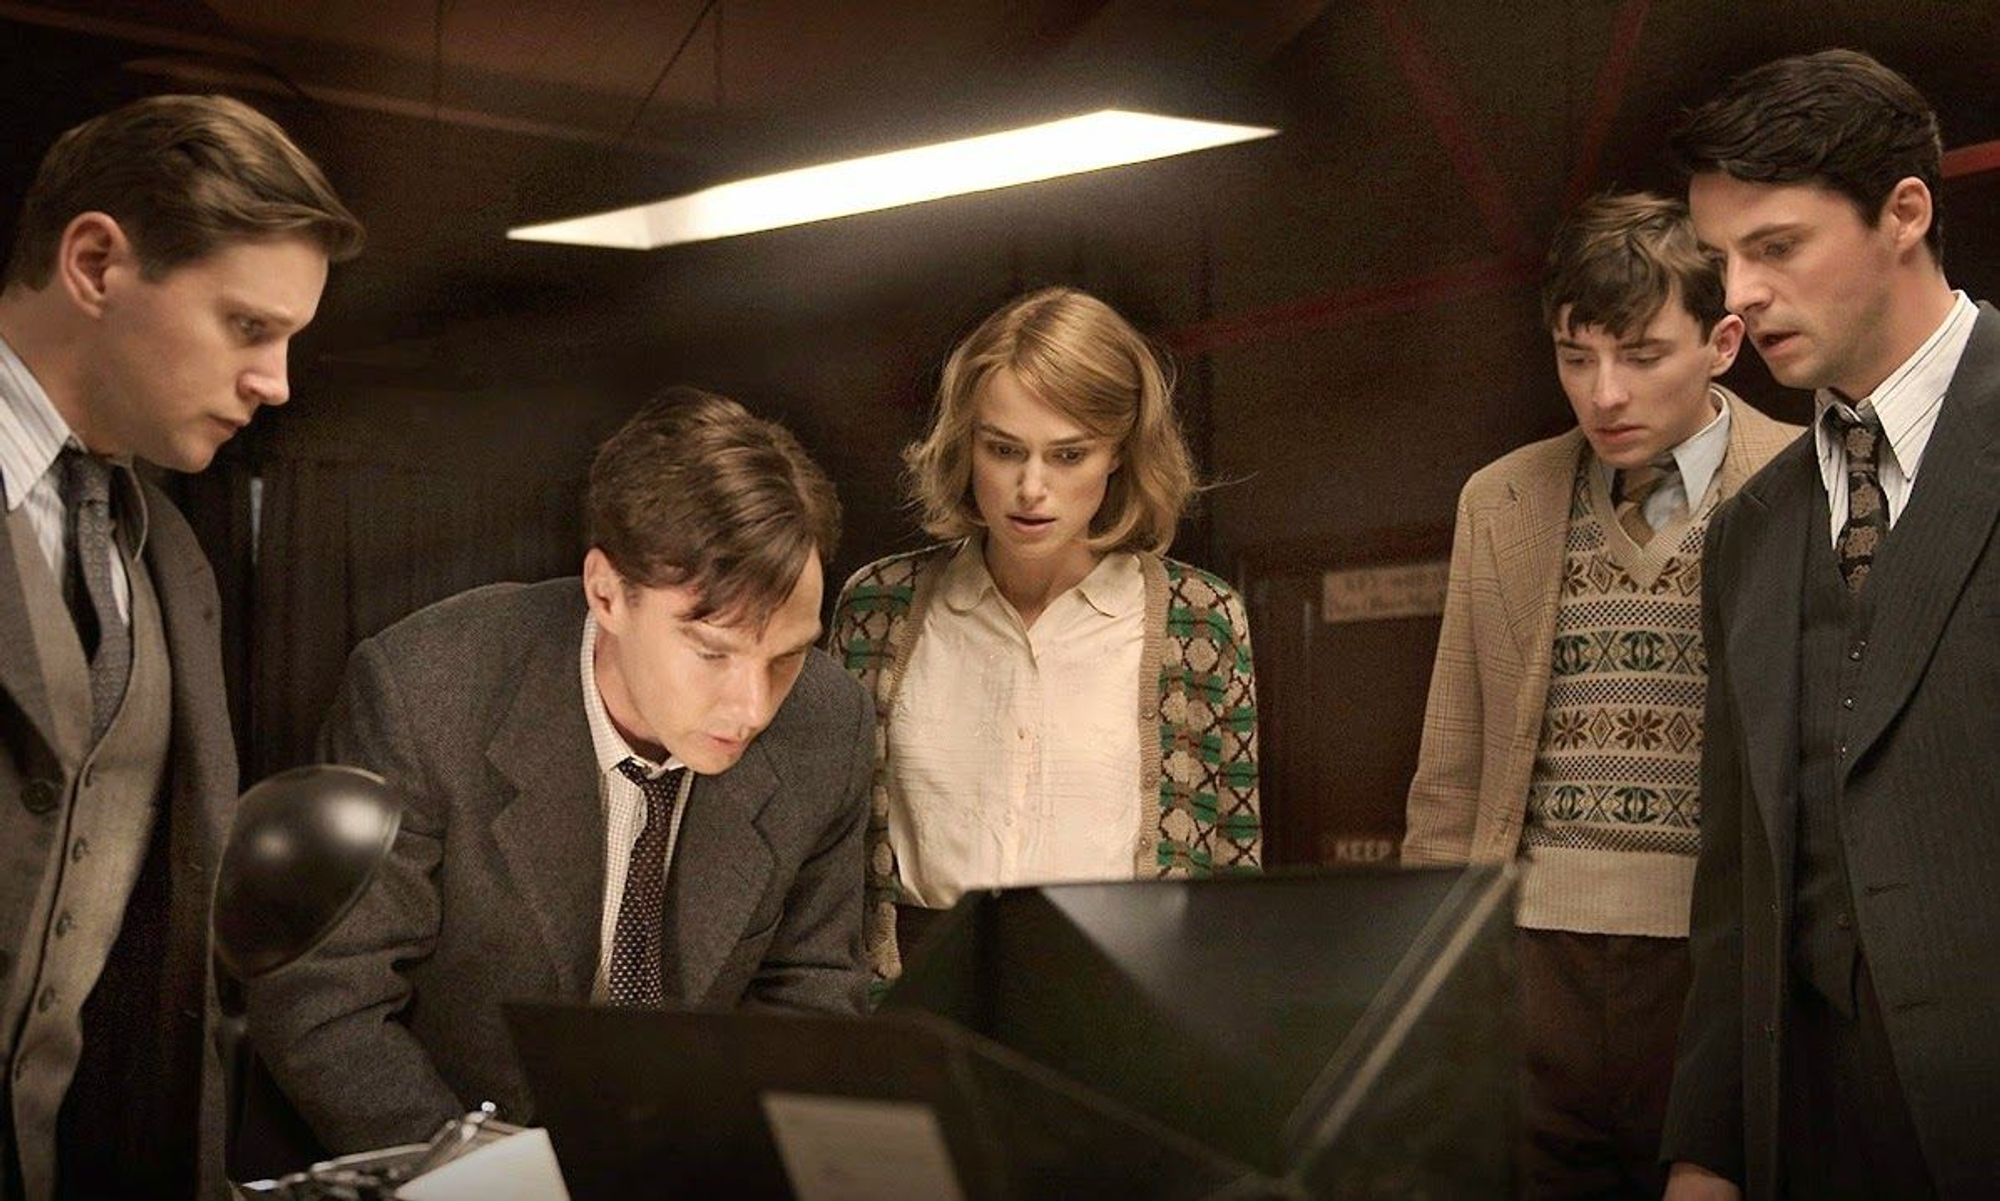 How to Watch The Imitation Game on Netflix - Best VPNs To Use